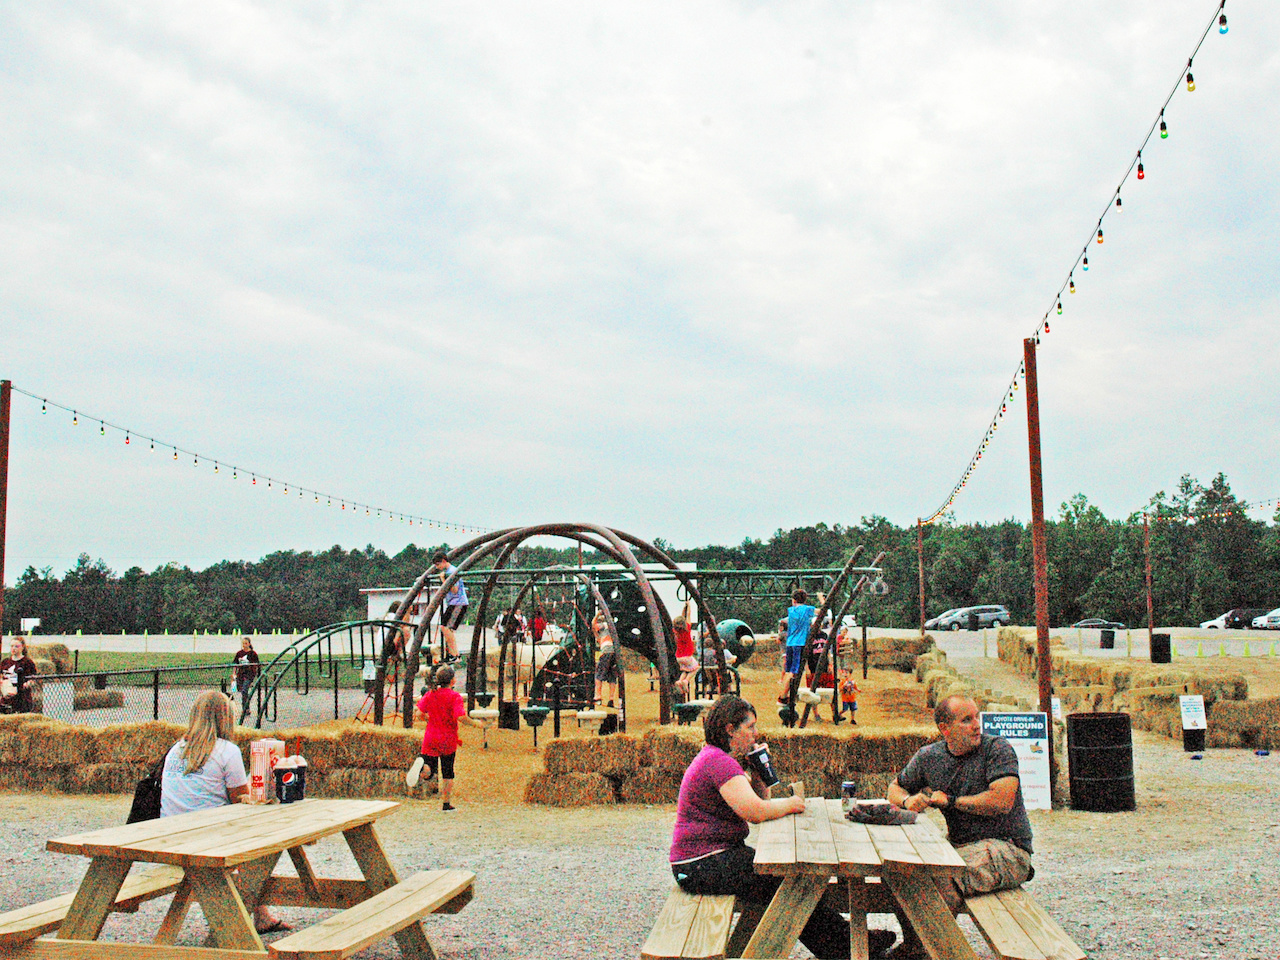 In addition to the canteen, the drive-in includes a picnic area and kids' play area.